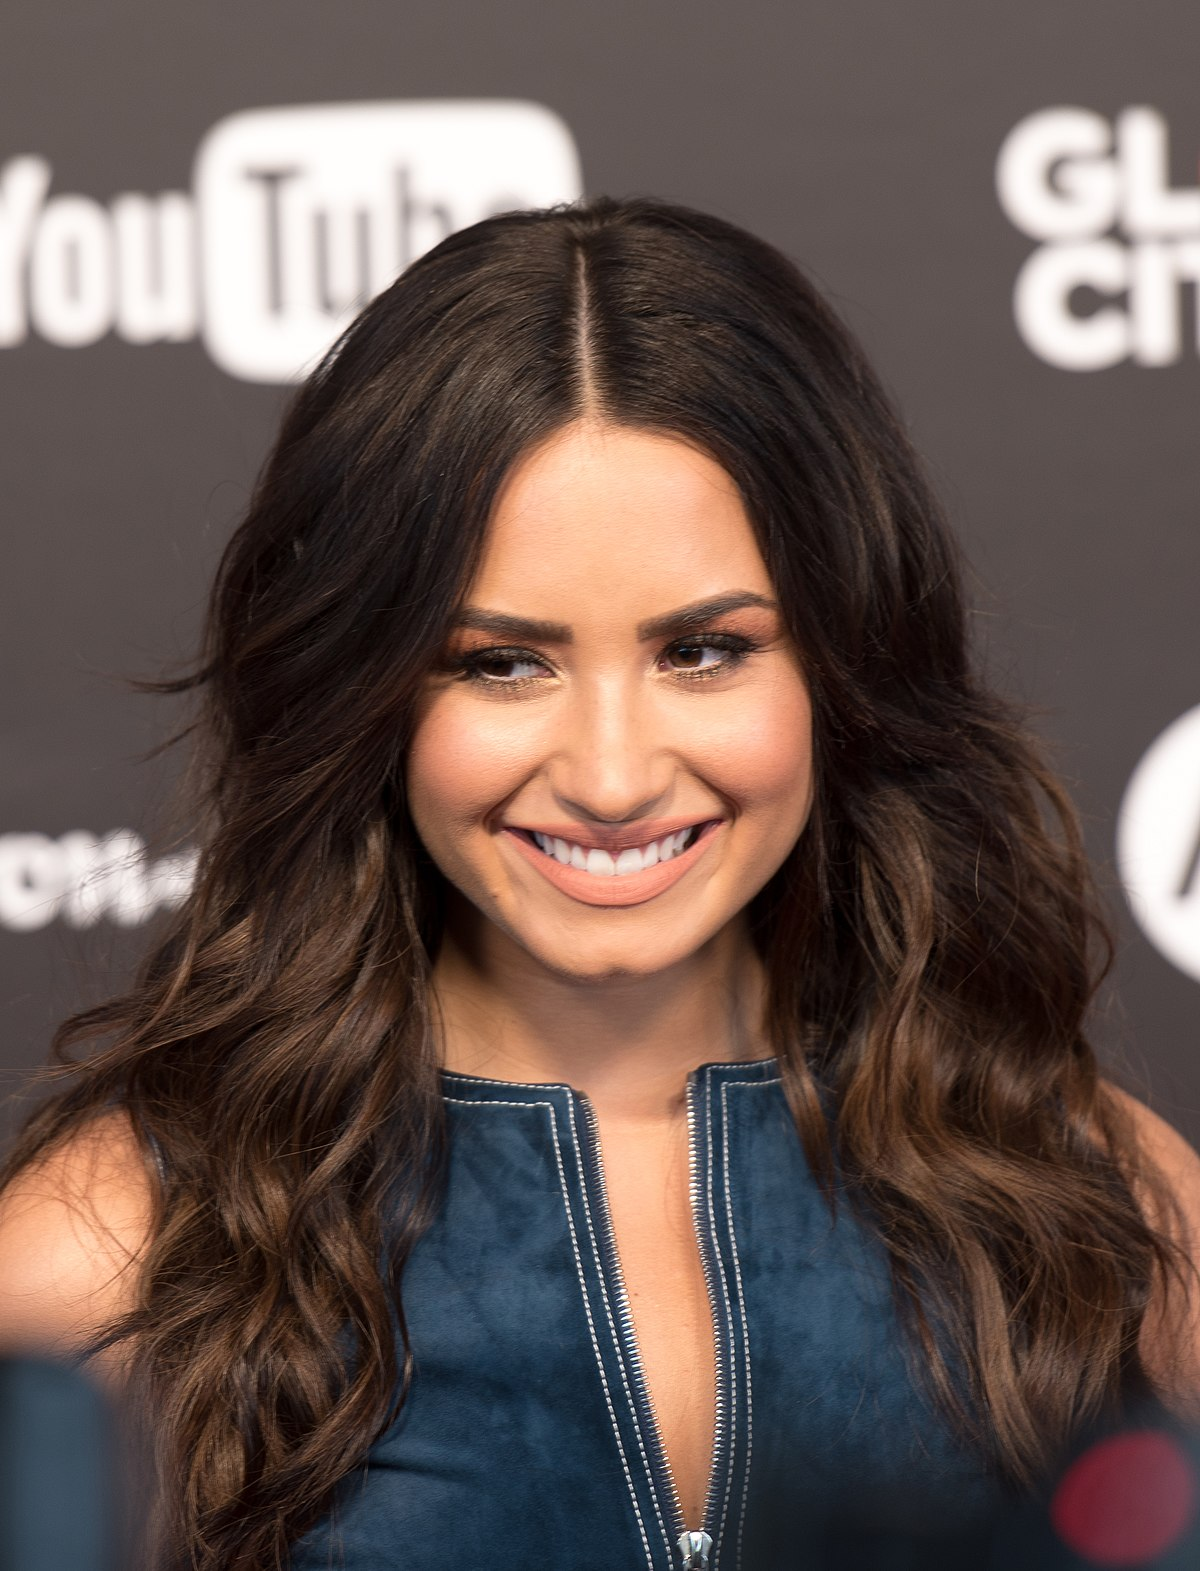 Demi Lovato Slams Fan Who Makes Assumption About Her Team